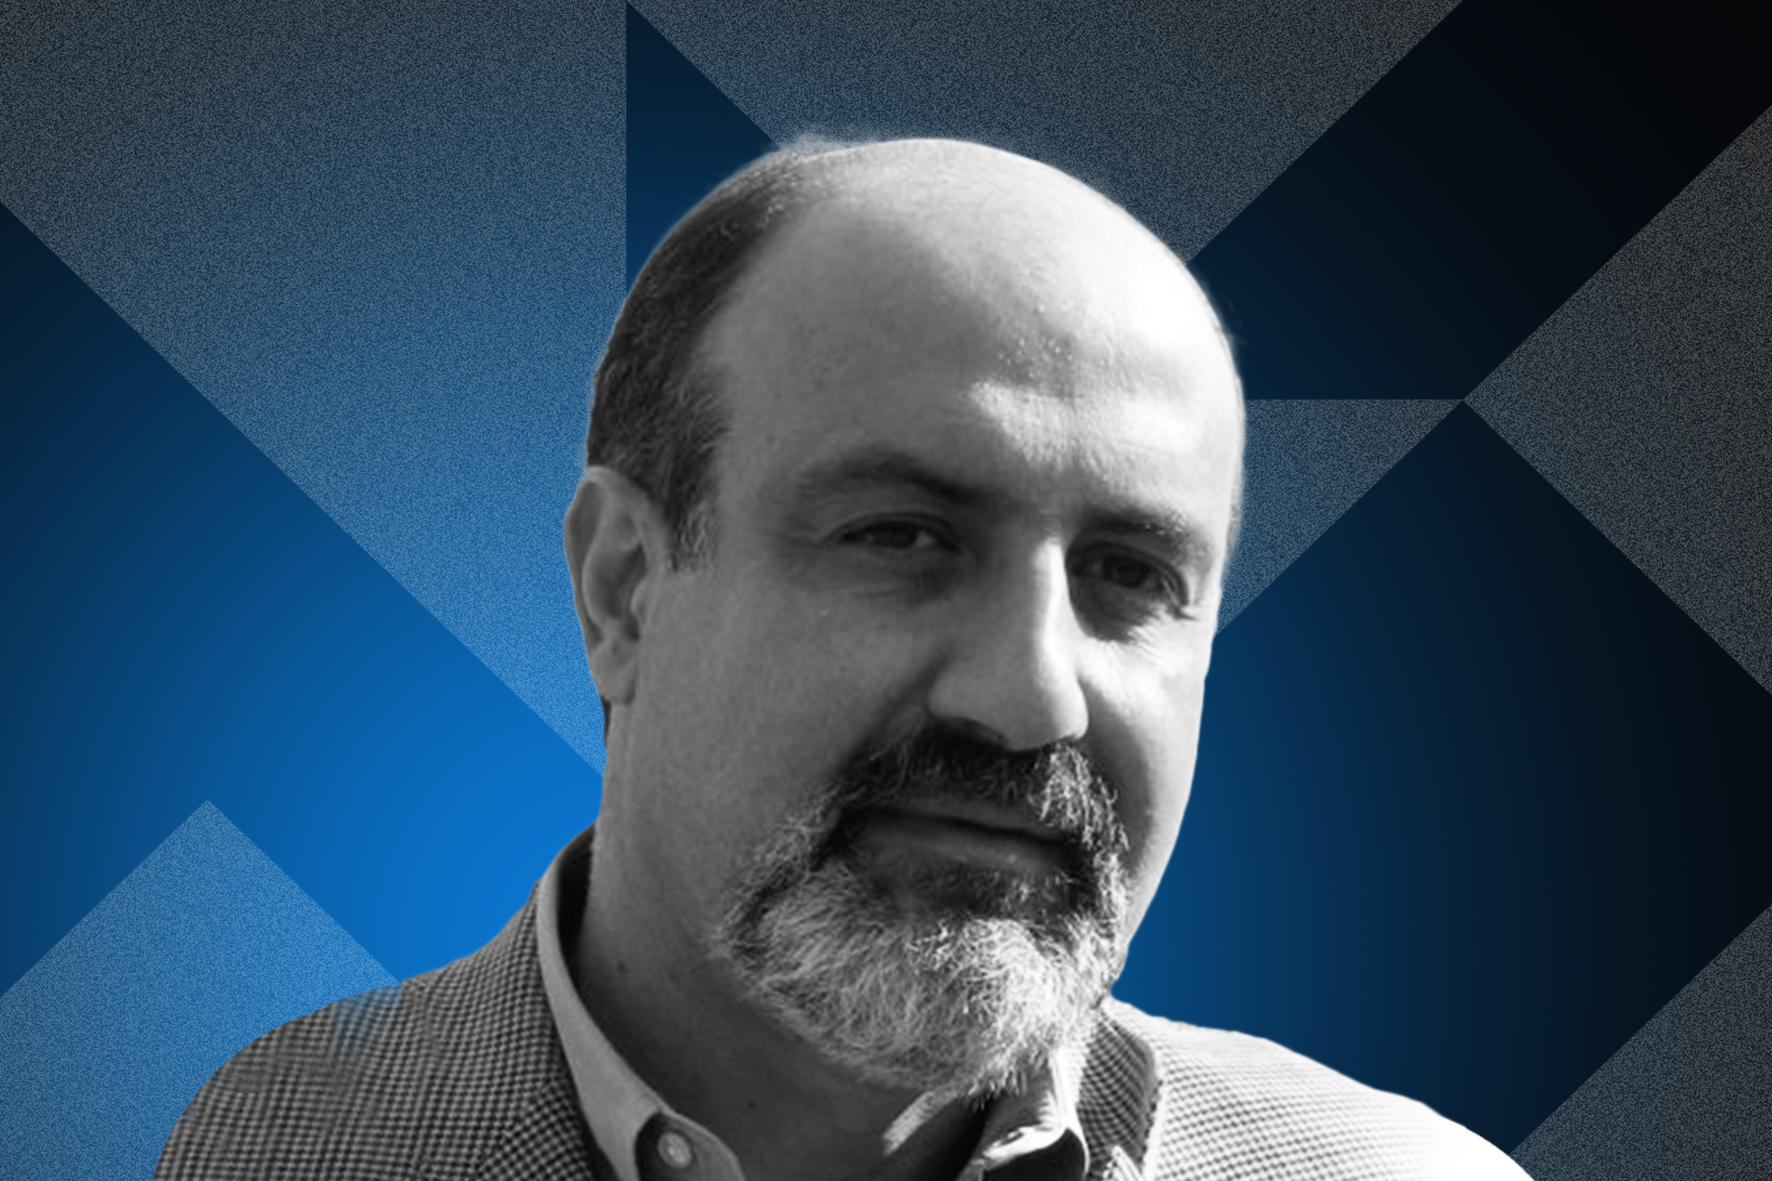 Watch Nassim Nicholas Taleb, a Risk Specialist at the Global Trends Festival 2020